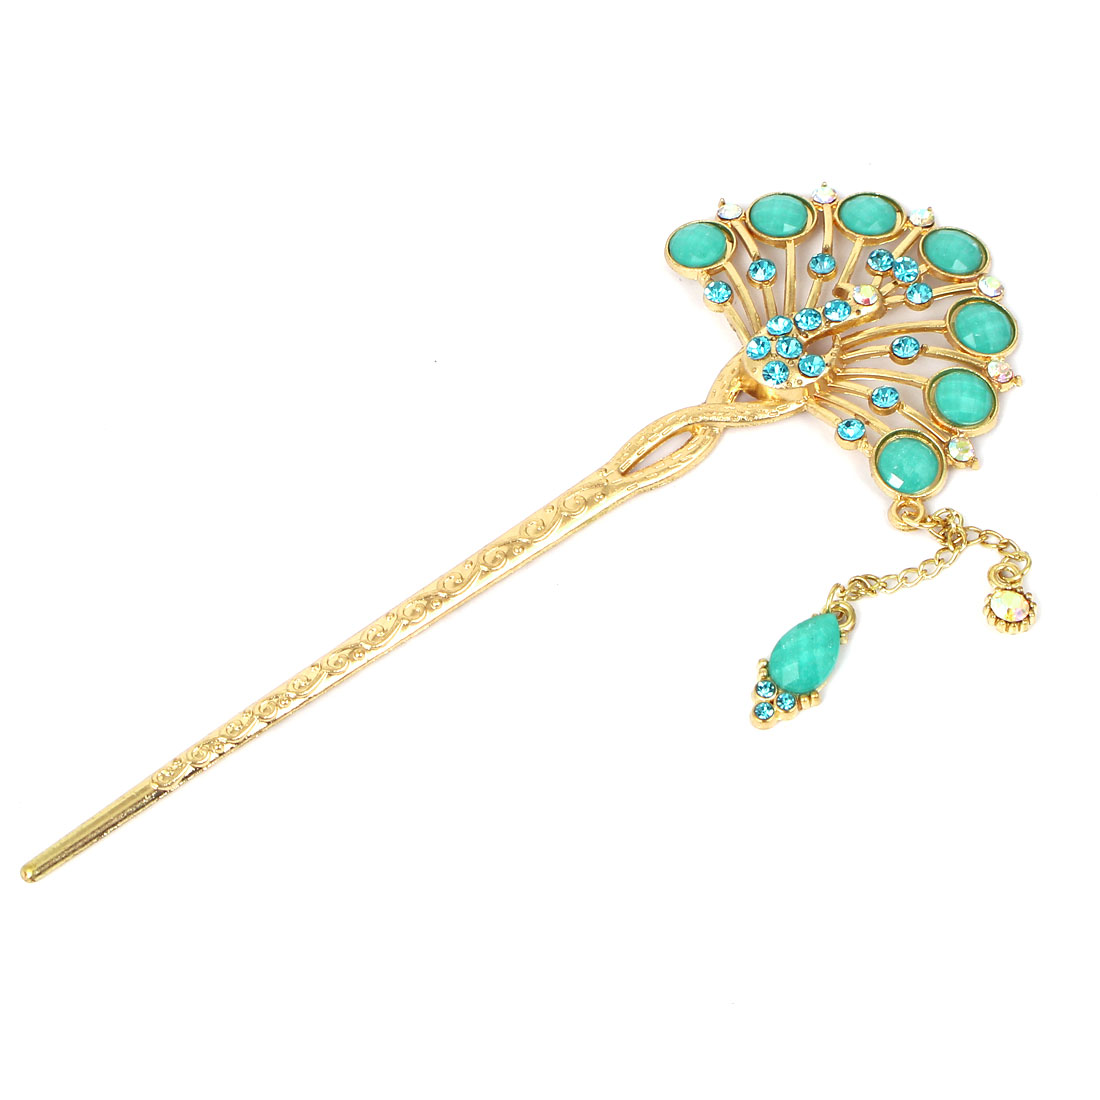 Women Faux Rhinestone Inlaid Peacock Shaped Hairpin Hair Clasp Stick Gold Tone Green